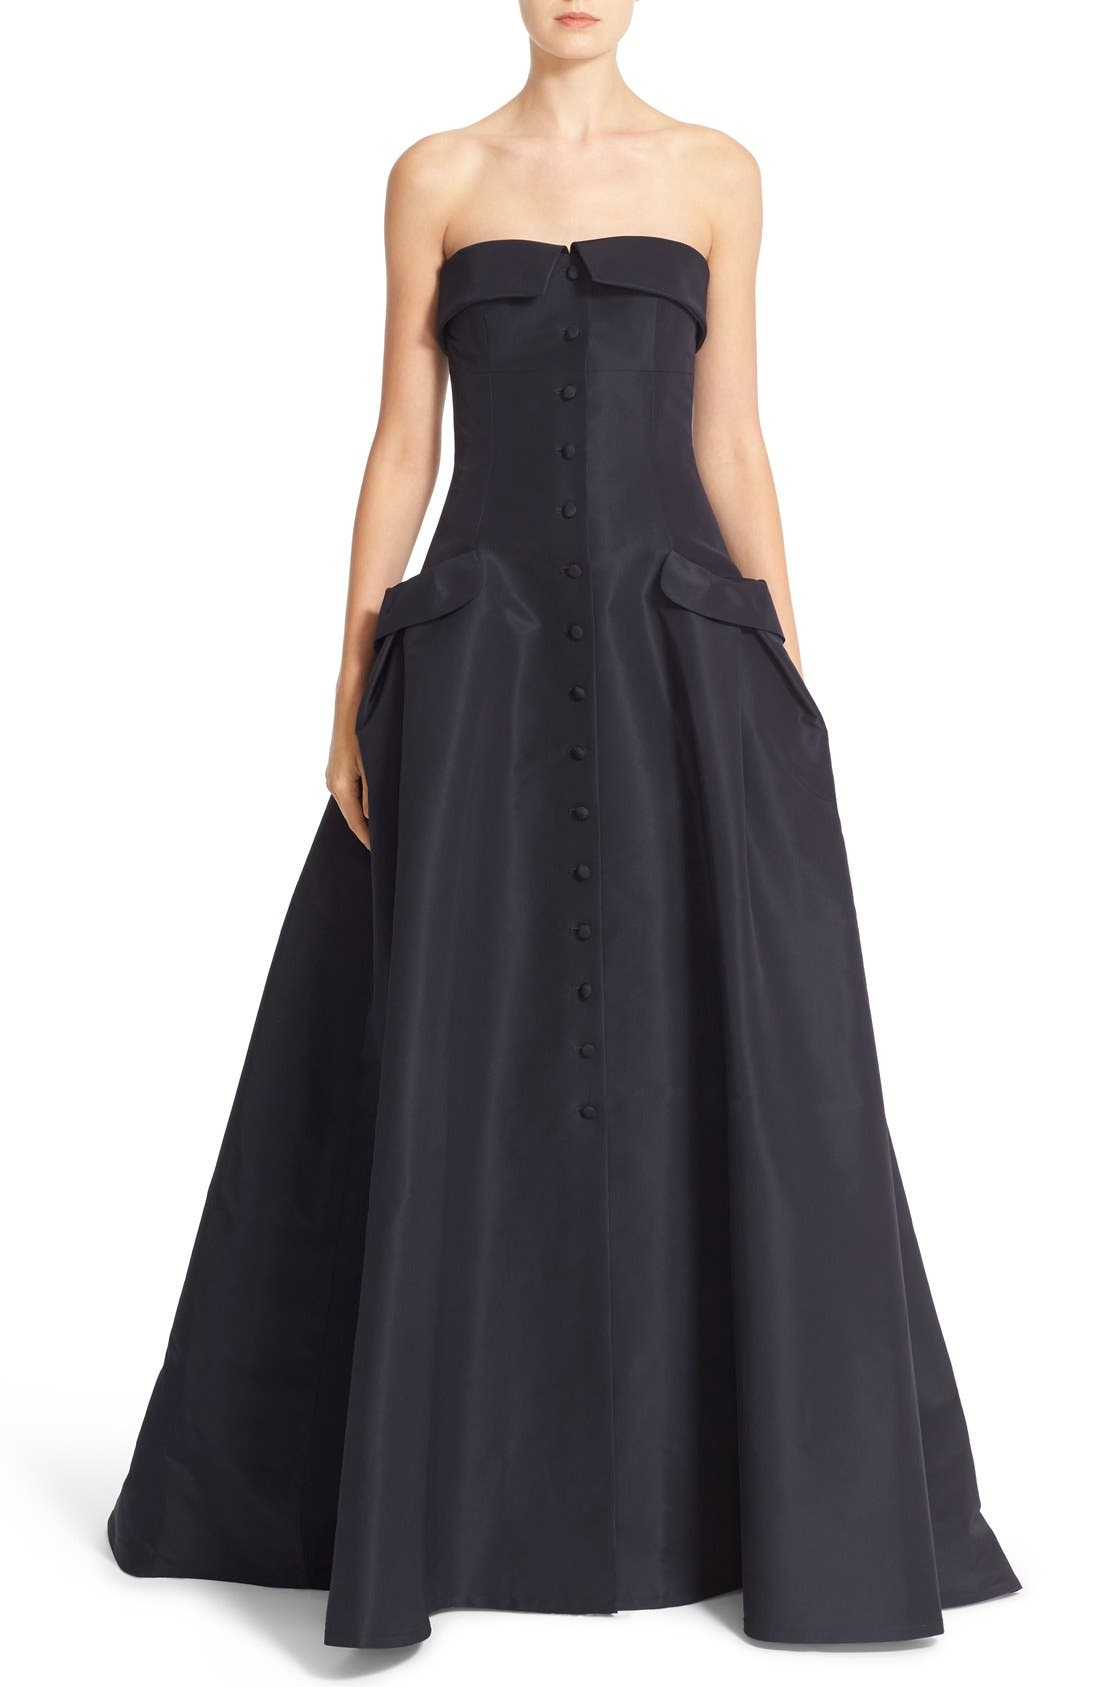 CAROLINA HERRERA Pocket Detail Strapless Silk Faille Gown